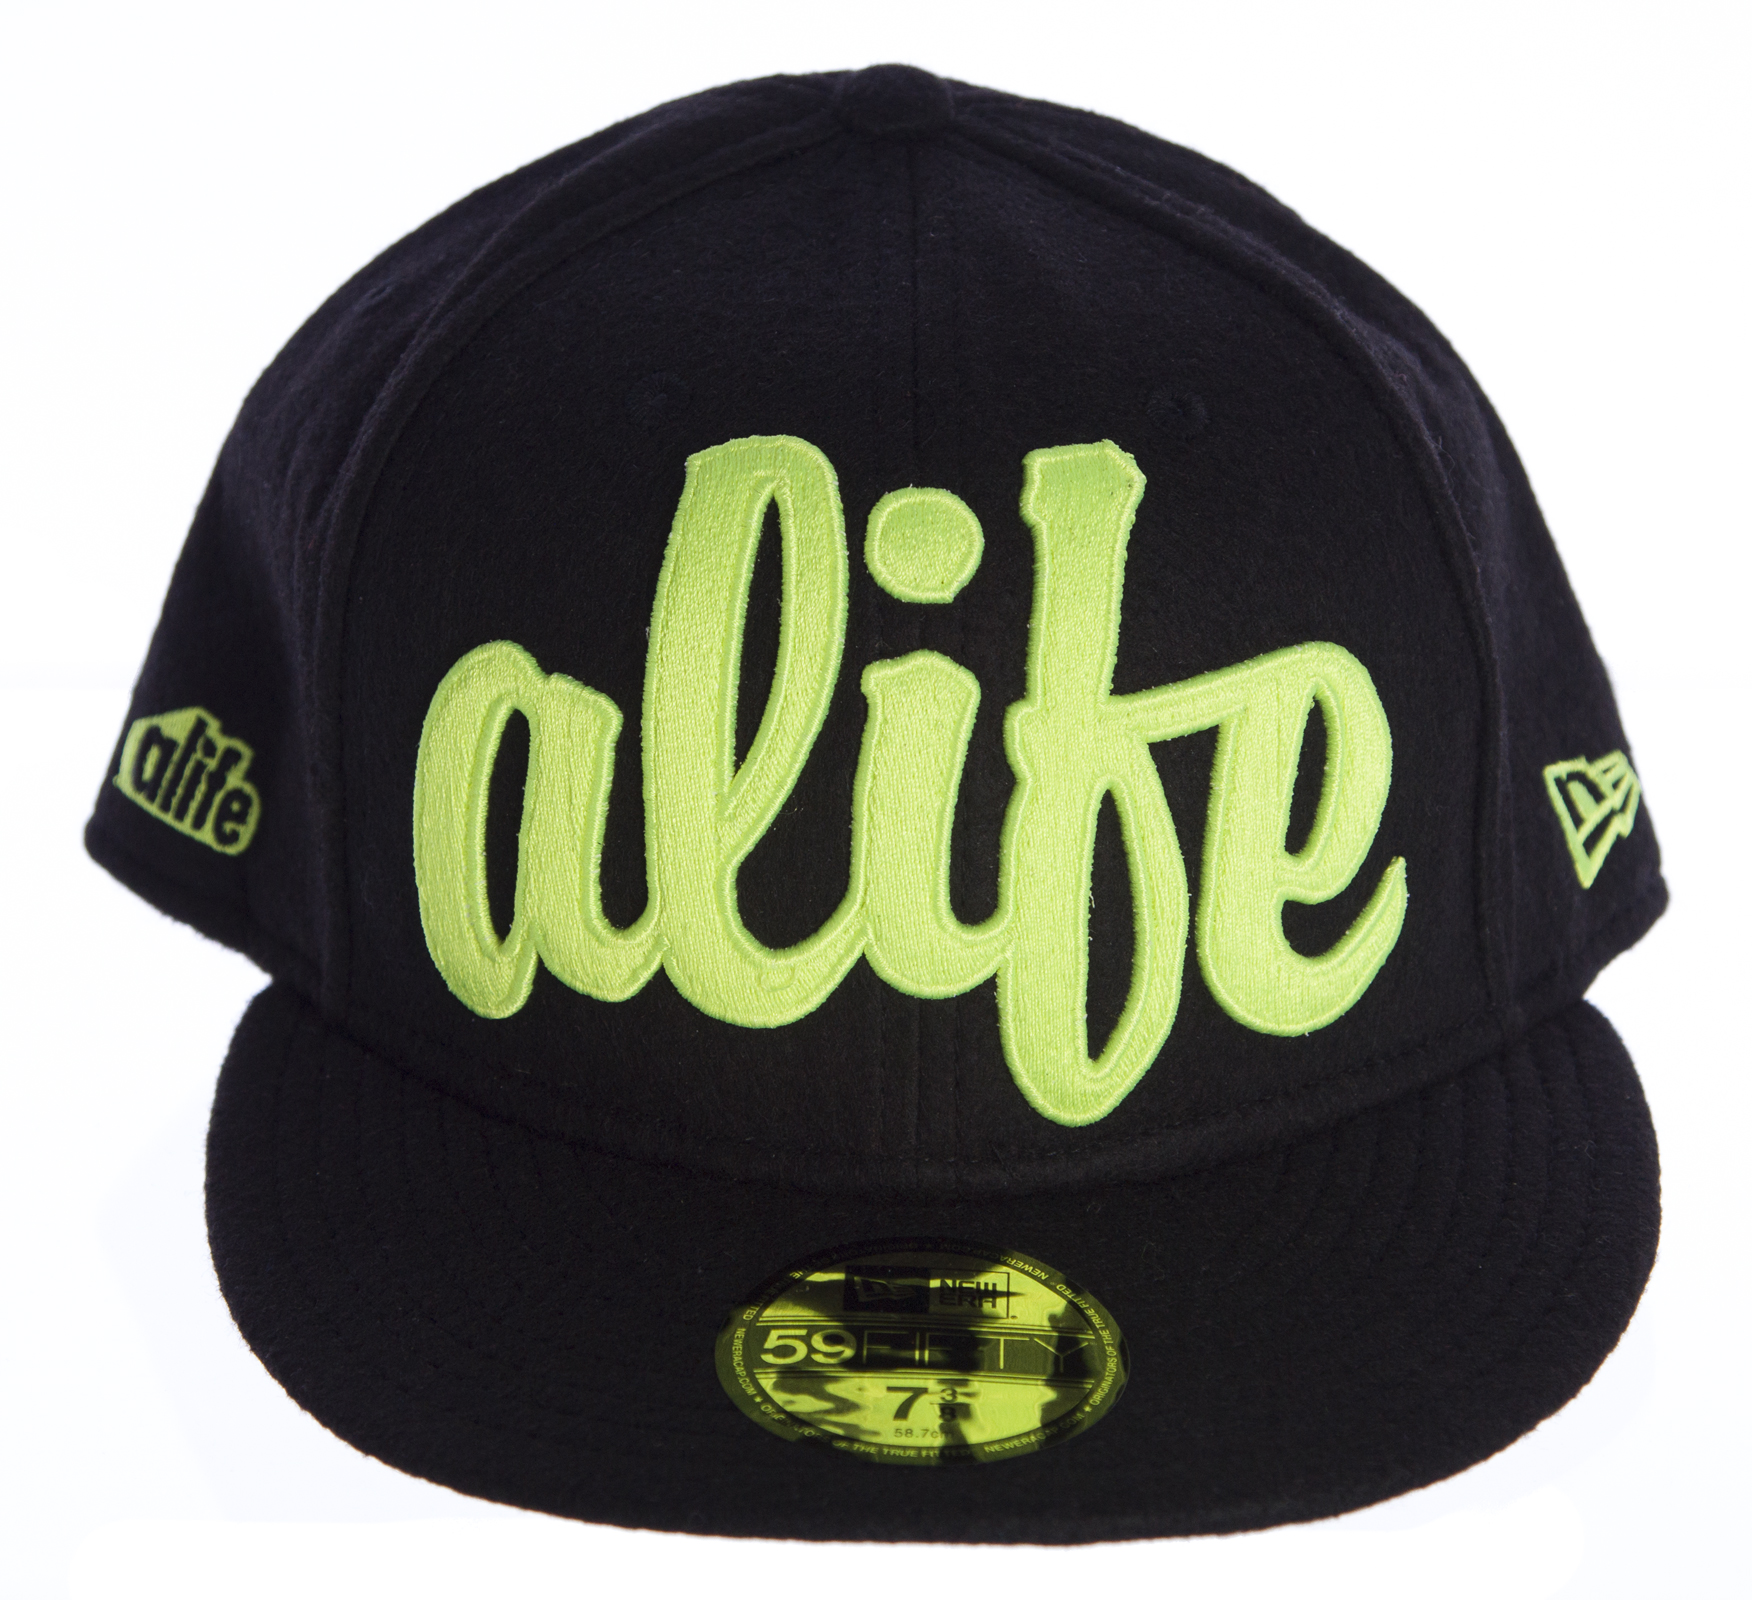 40a2d83928739 NEW ERA 59FIFTY Black Alife Ballout Fitted Hat Sz 7 3 8  50 NEW ...